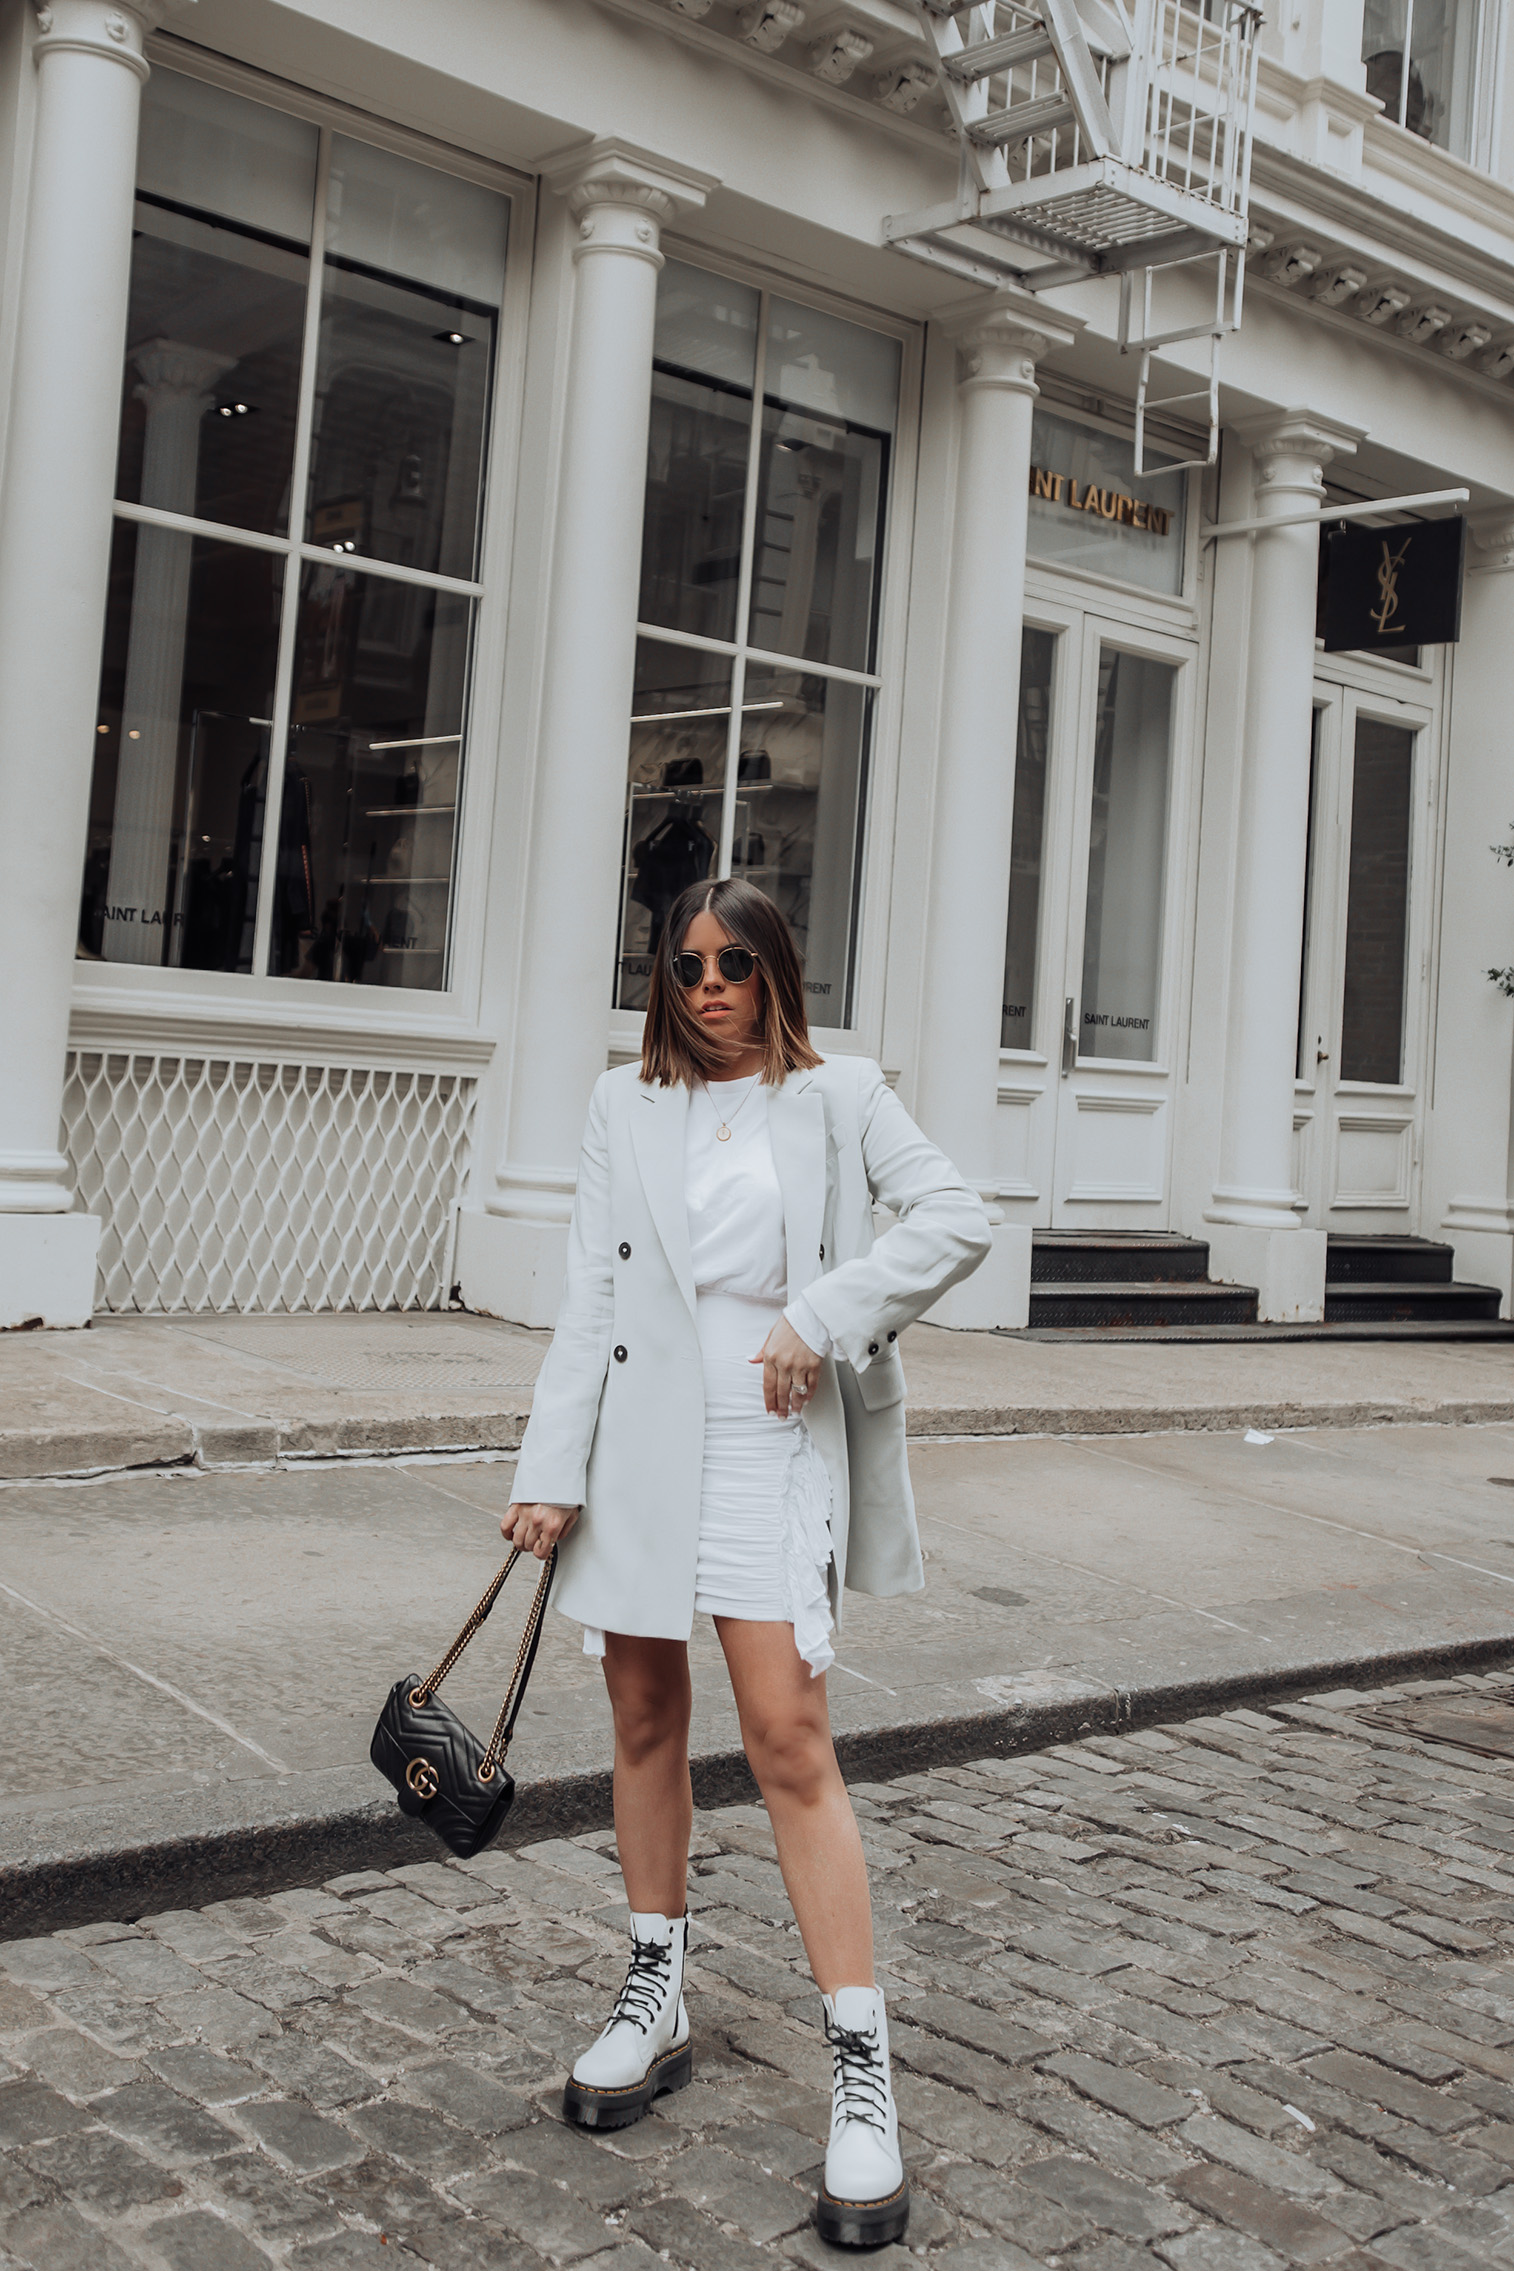 Happy Thursday loves! So I'm repeating this Mango blazer because it's seriously that good! The color is so pretty for spring and looks so cute with a little white dress! Especially if you want to give the LWD an elevated vibe. Which is always a good idea in my opinion!